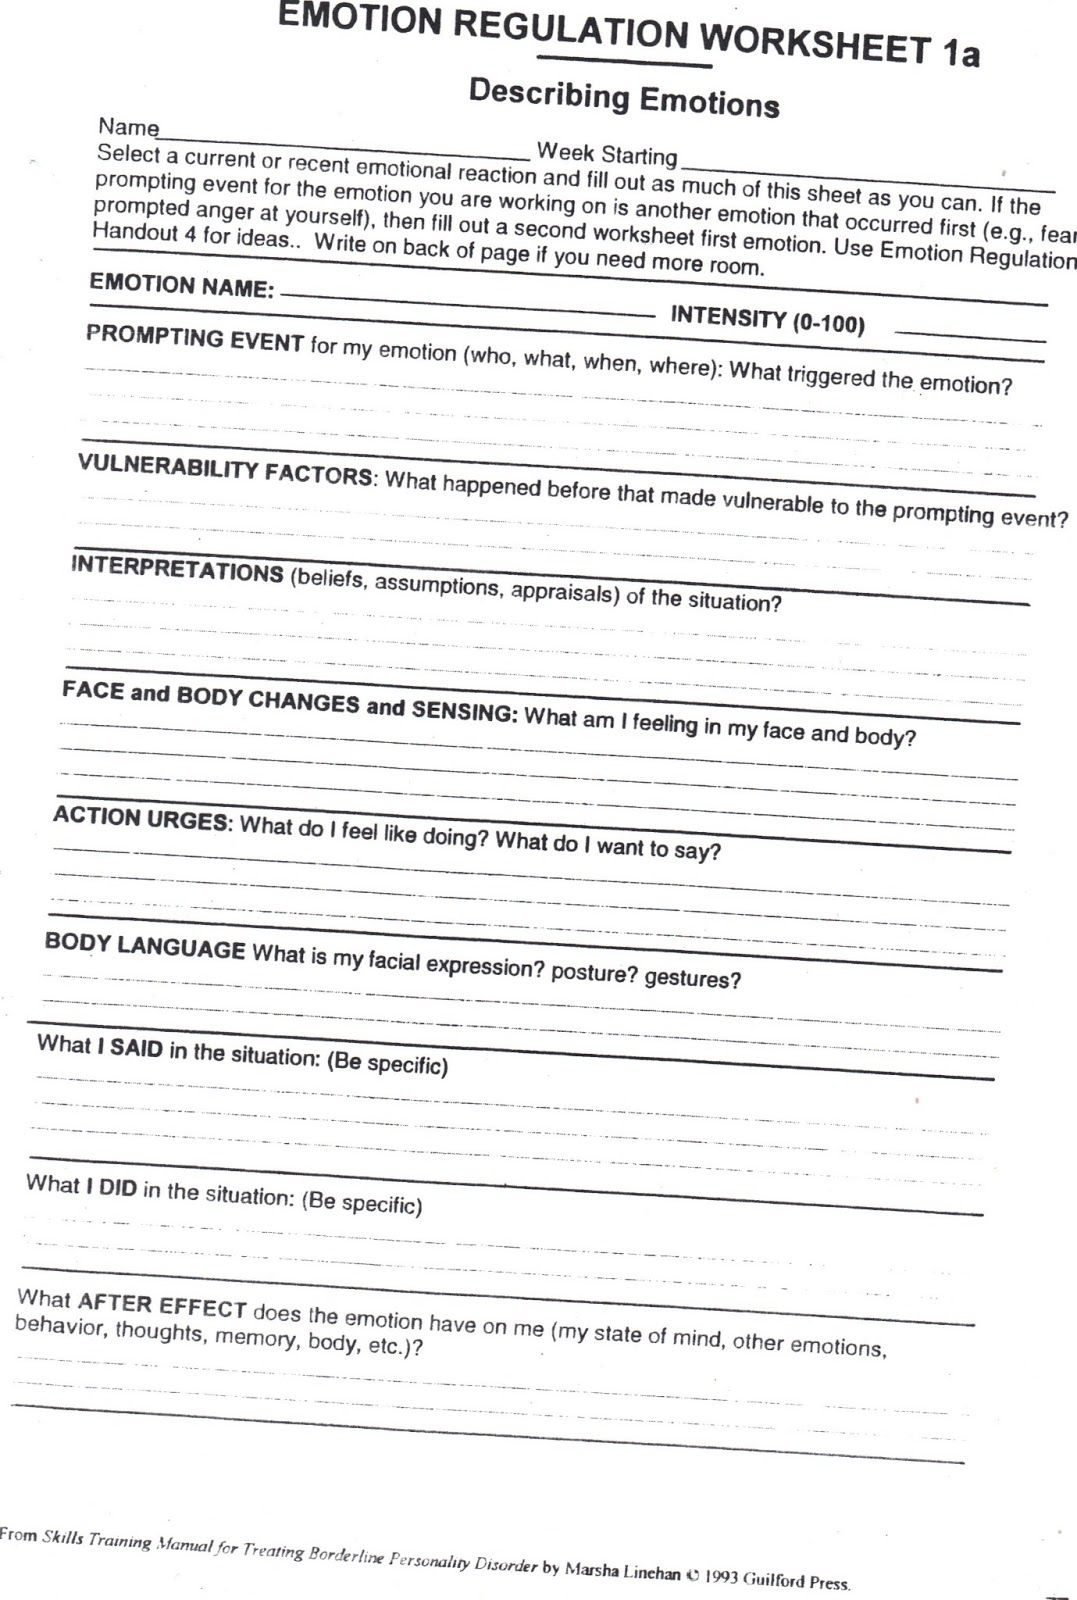 worksheet Emotional Regulation Worksheets healingfrombpd org sorting out emotions using dbt emotion regulation worksheet 1a